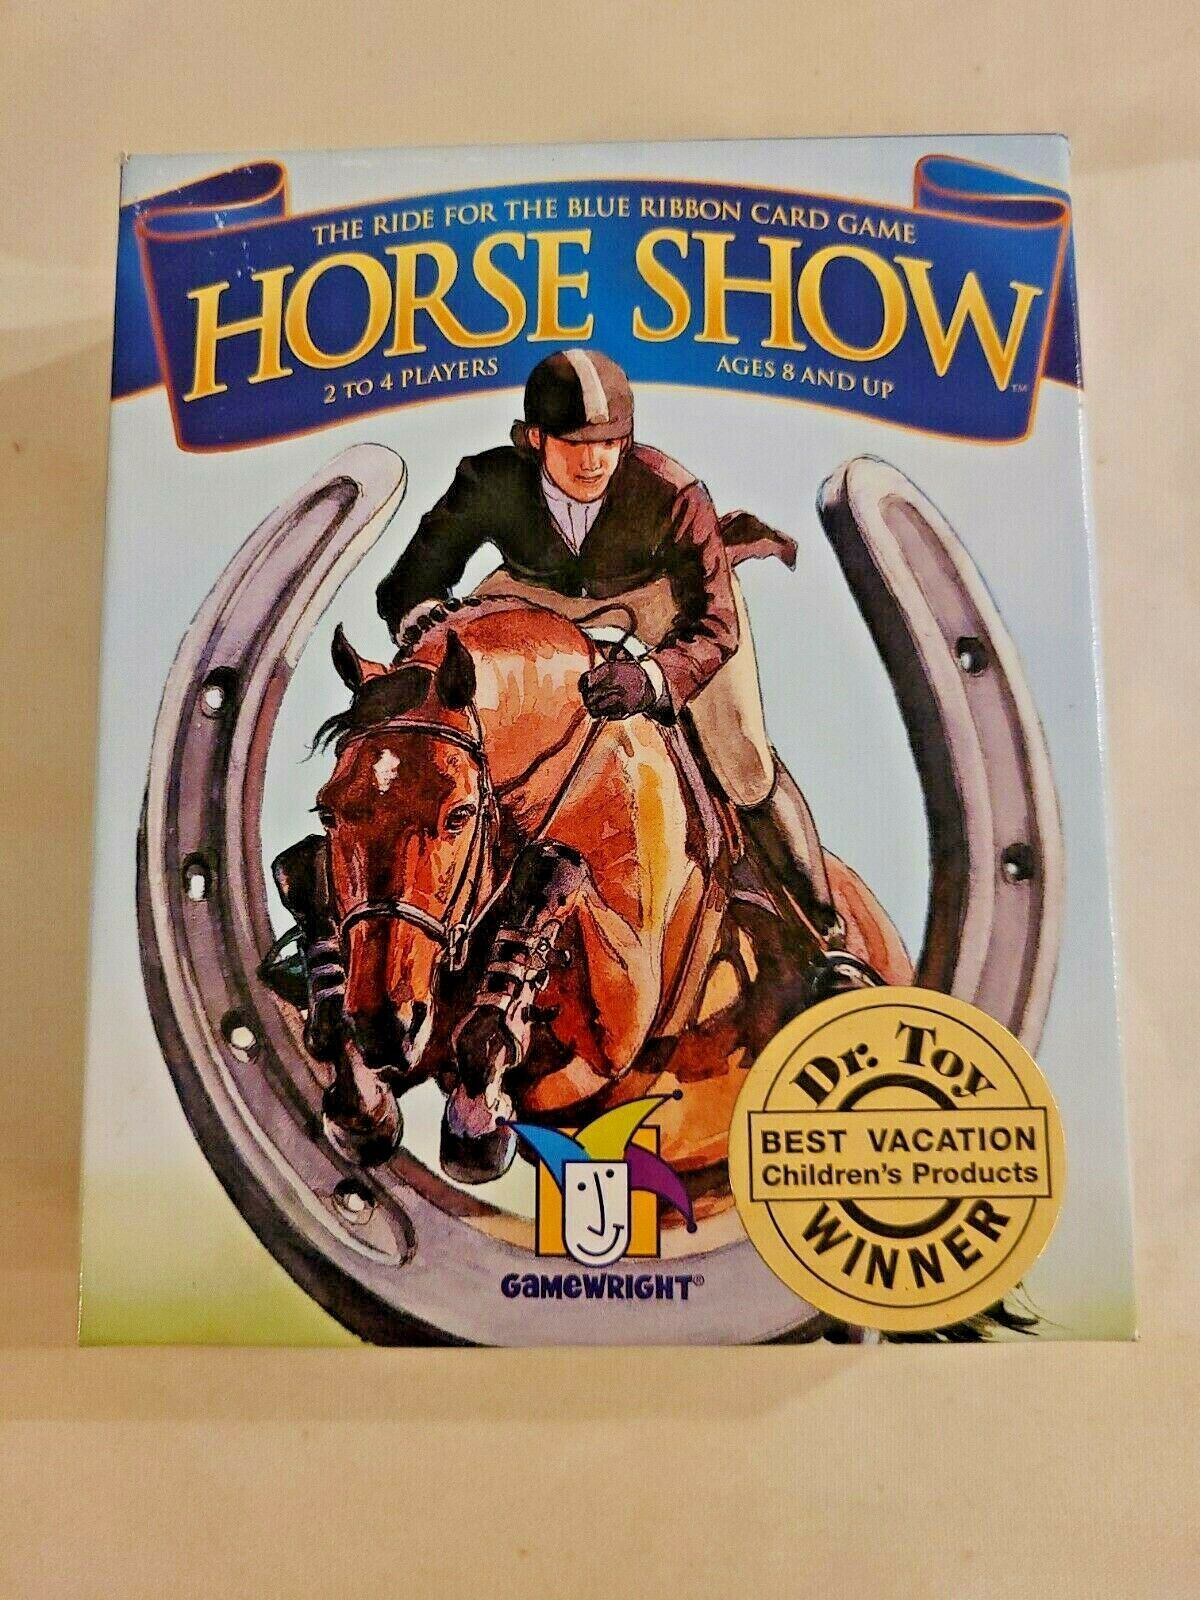 Primary image for Horse Show Ride for Blue Ribbon Card Game open box complete Gamewright 2007